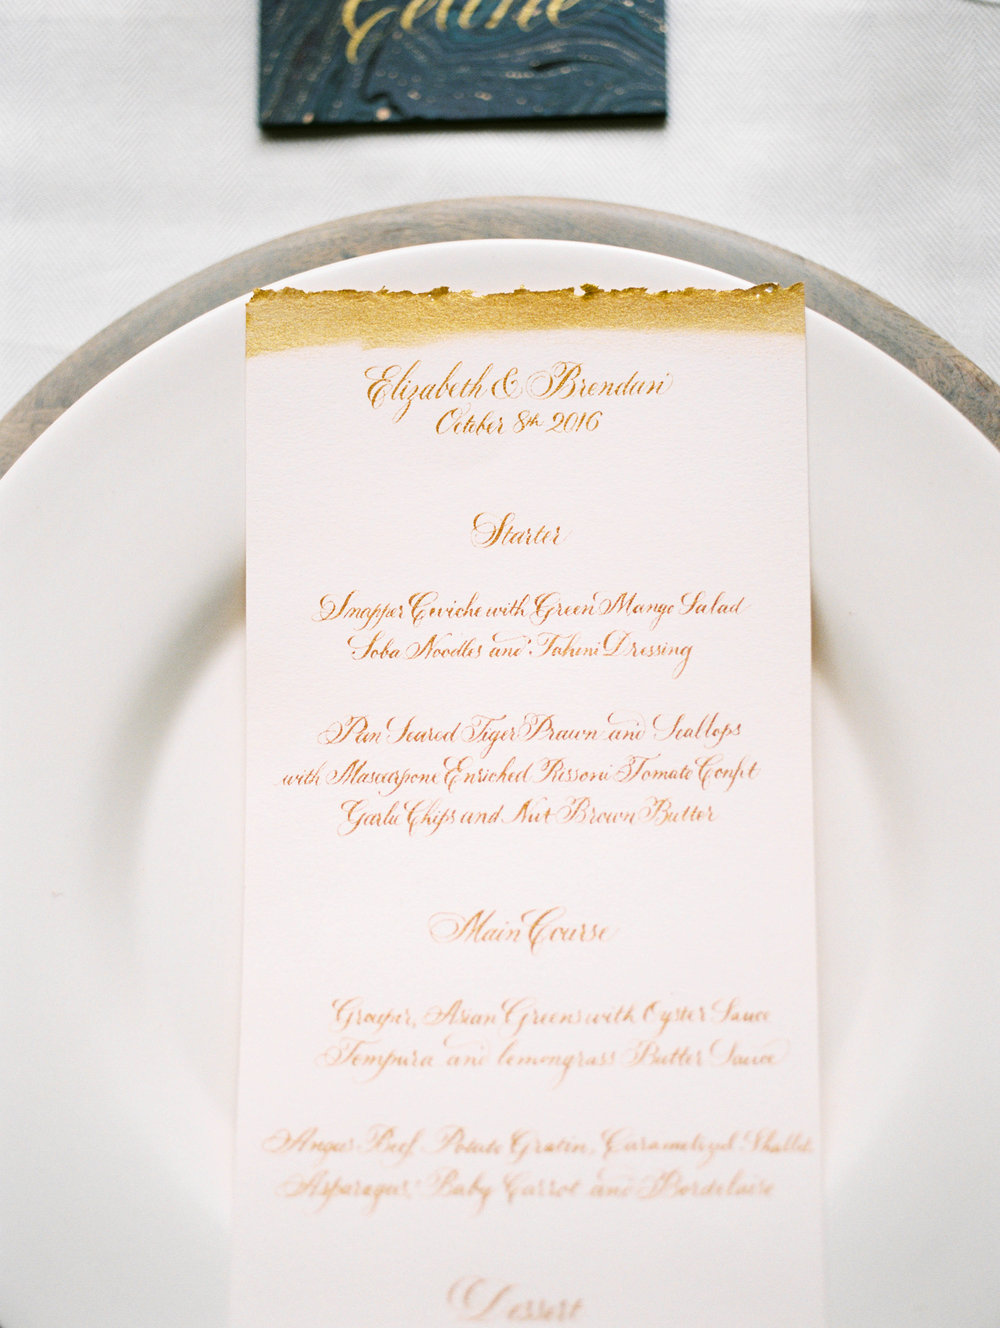 Wedding Dinner Menu - www.jleephotos.com